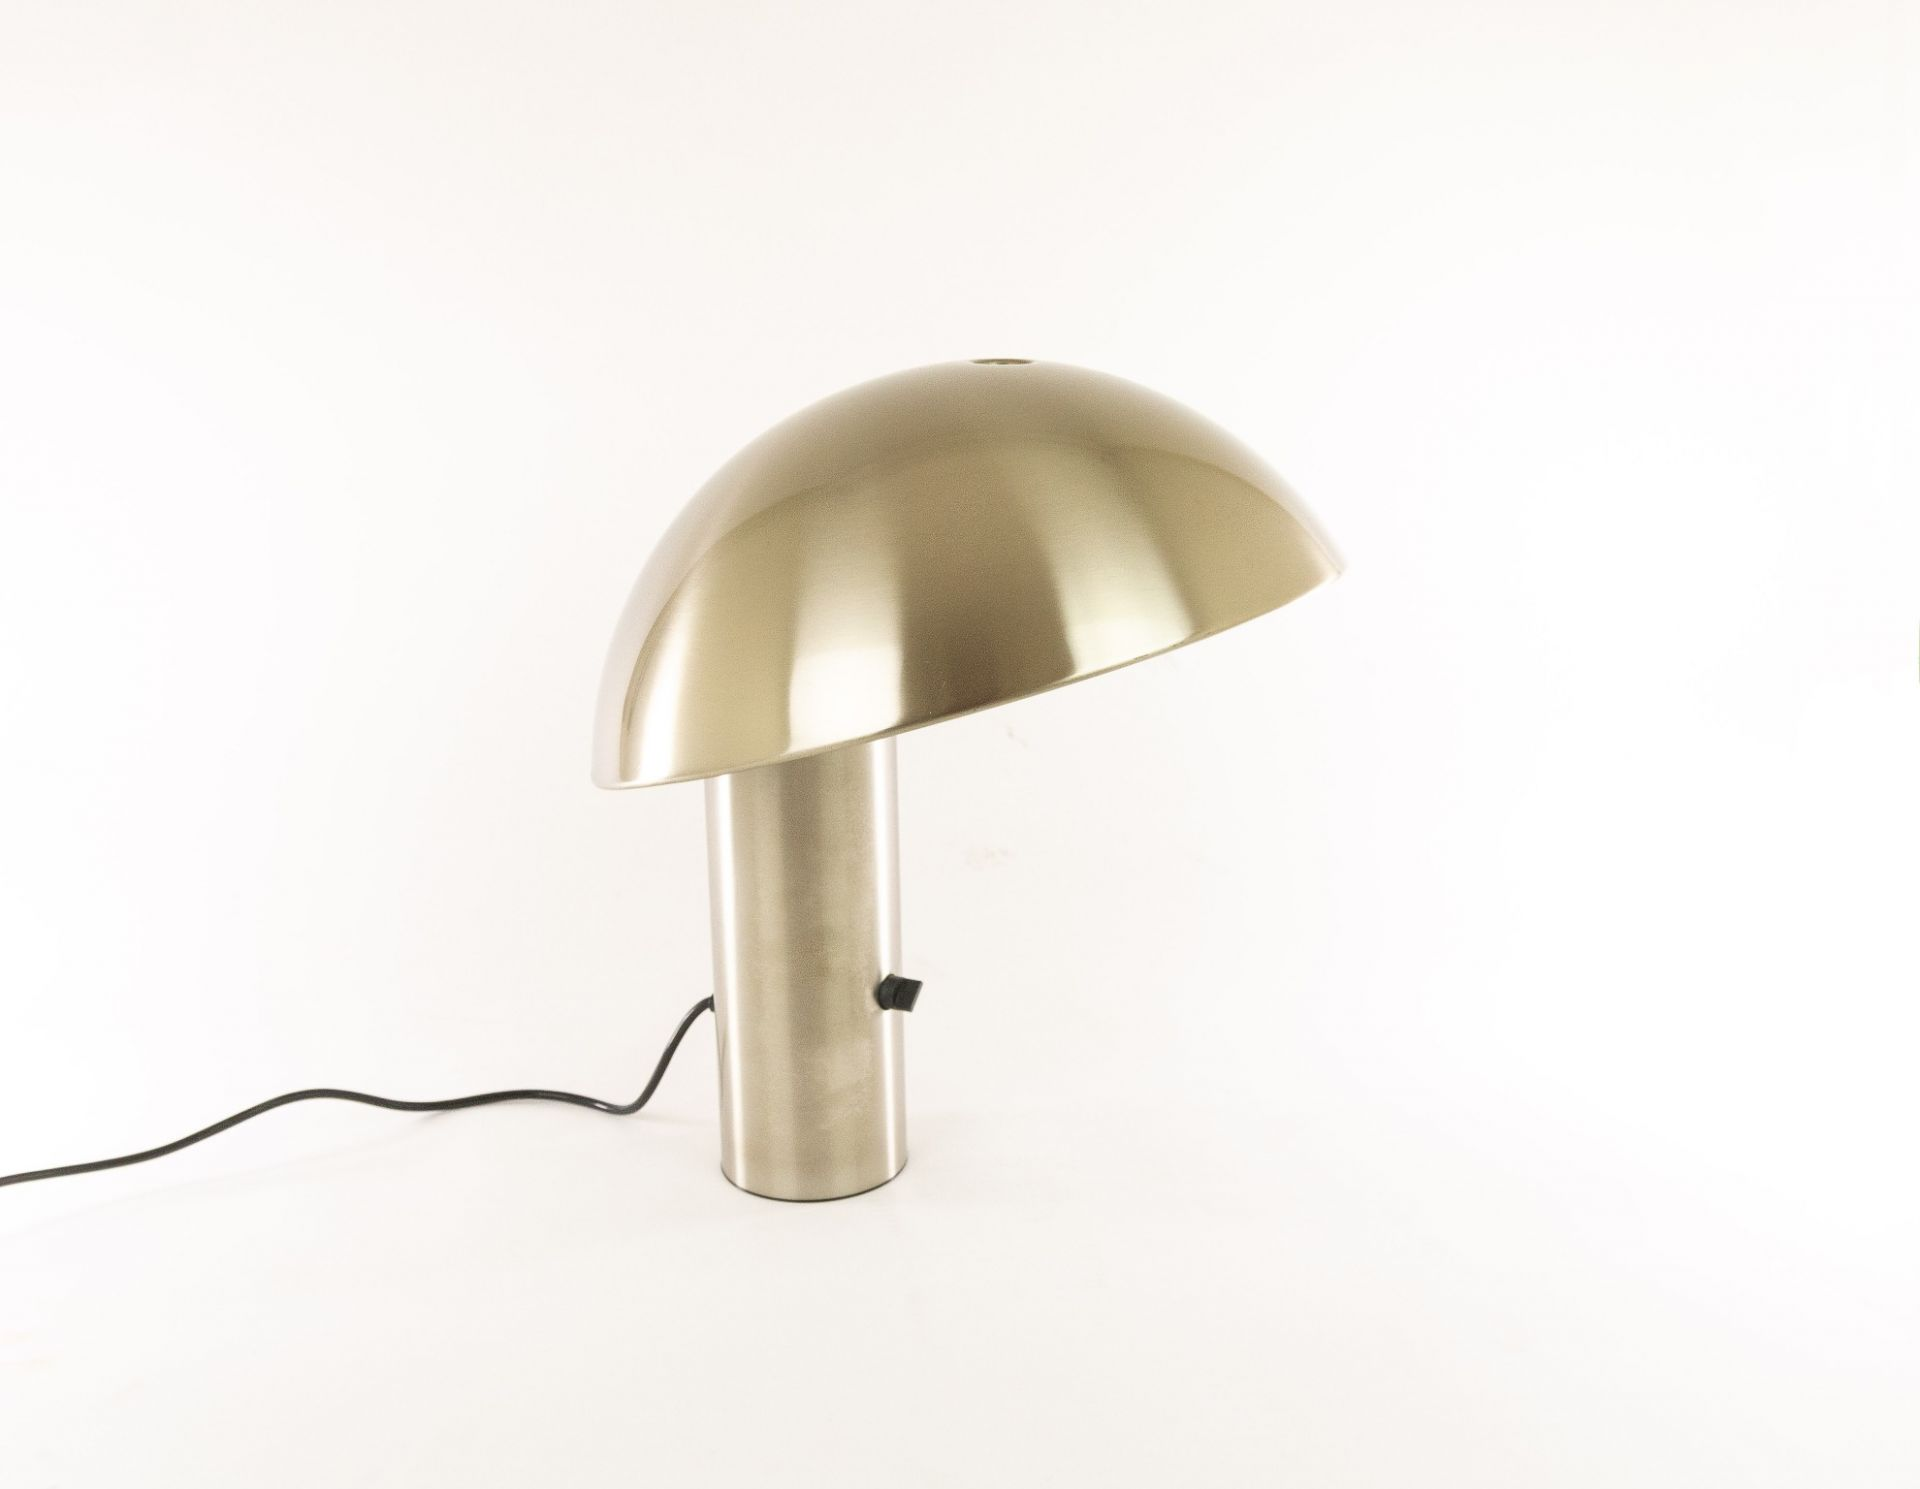 Vaga table lamp by Franco Mirenzi for Valenti, 1970s